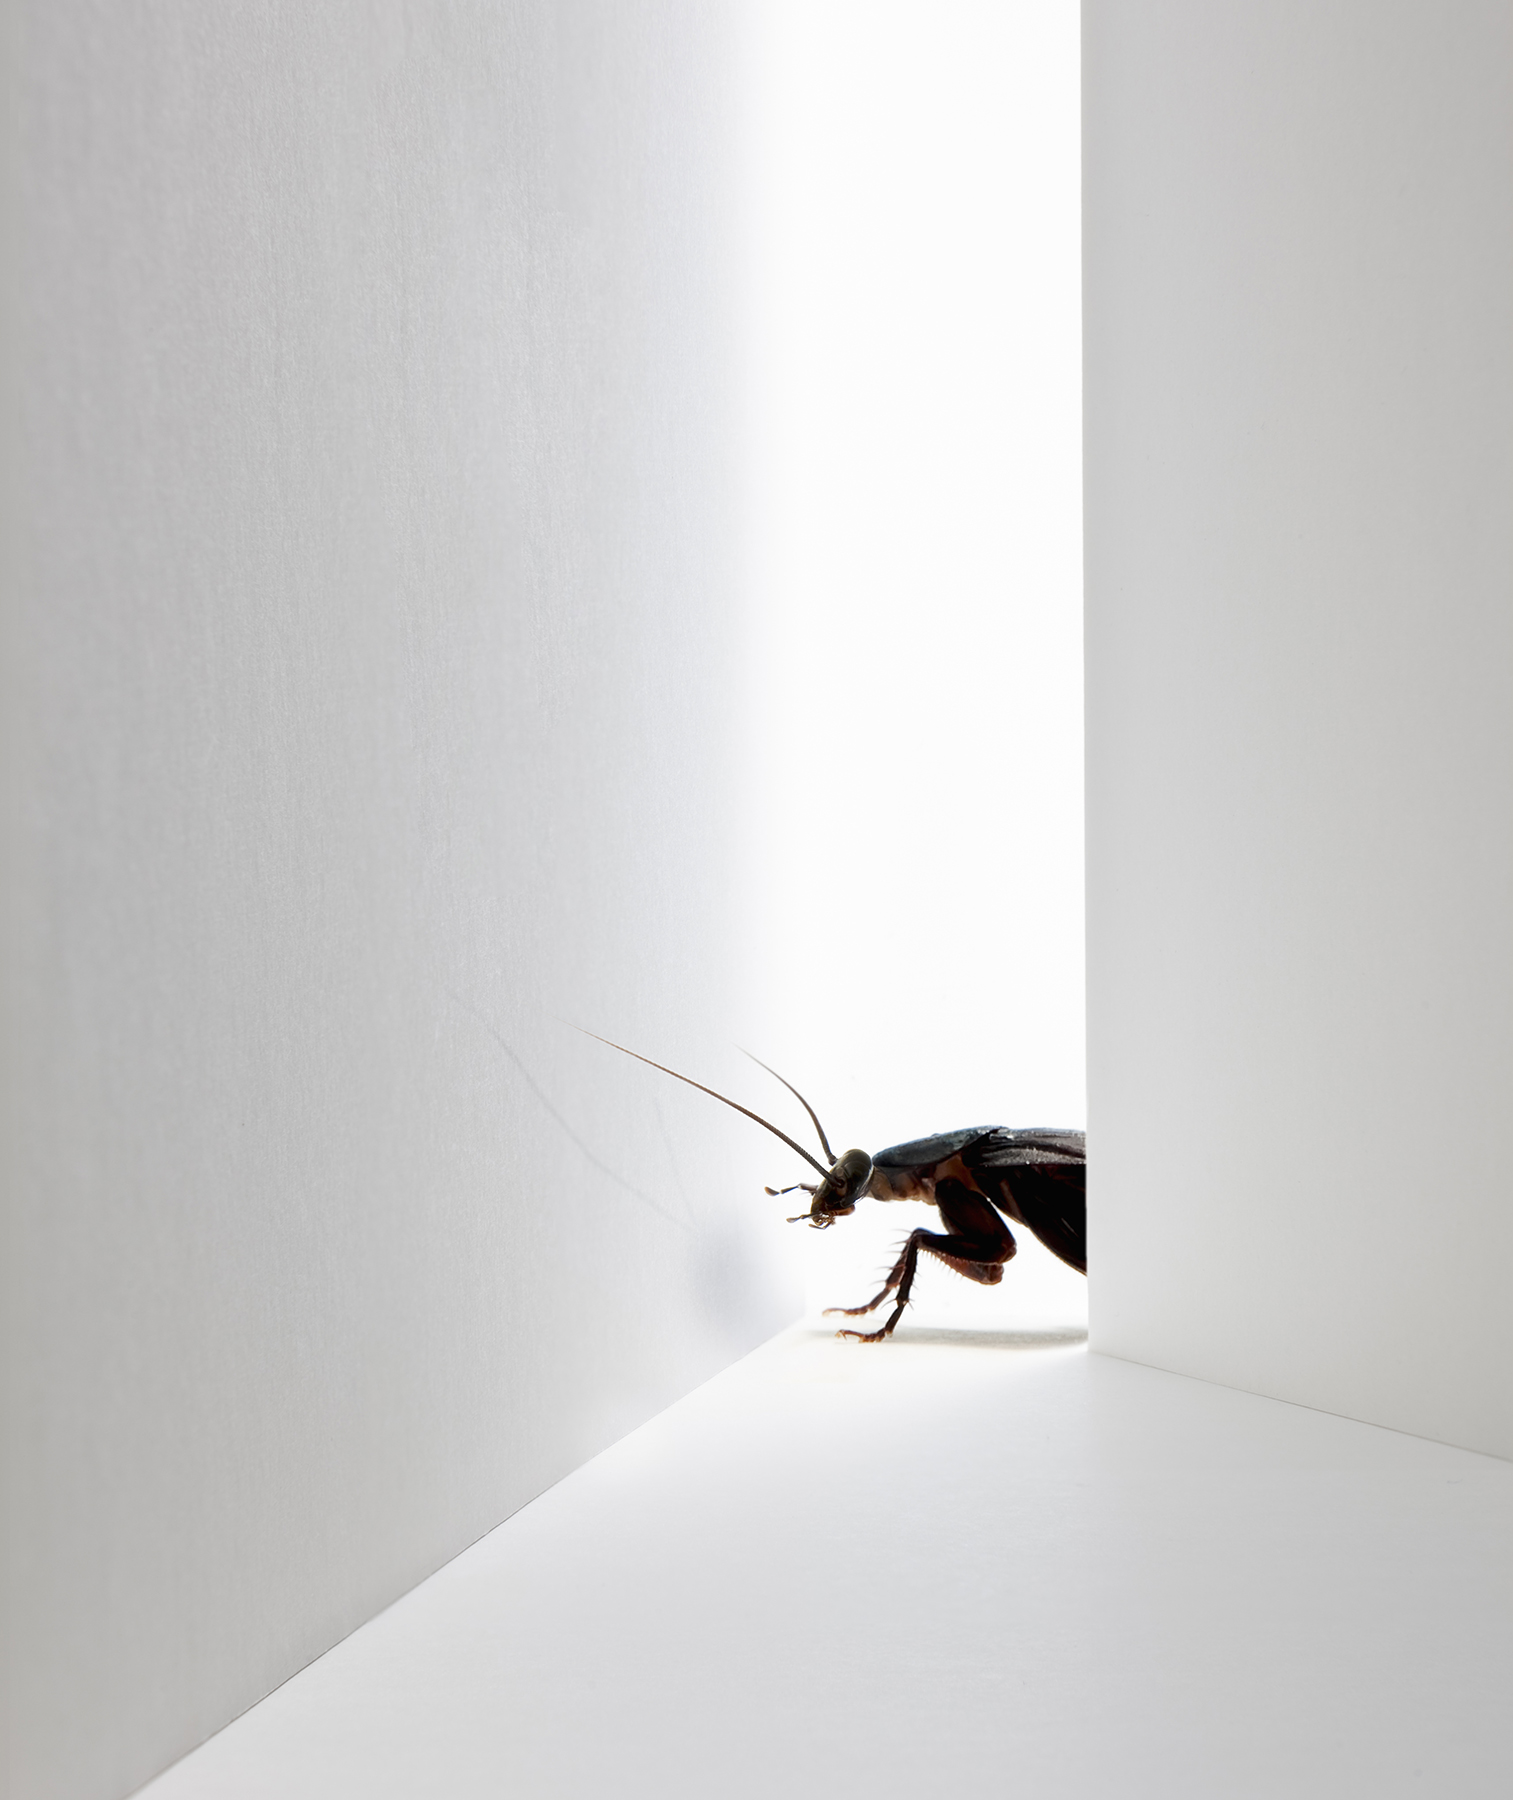 4 Things Professional Exterminators Know About Dealing with Cockroaches